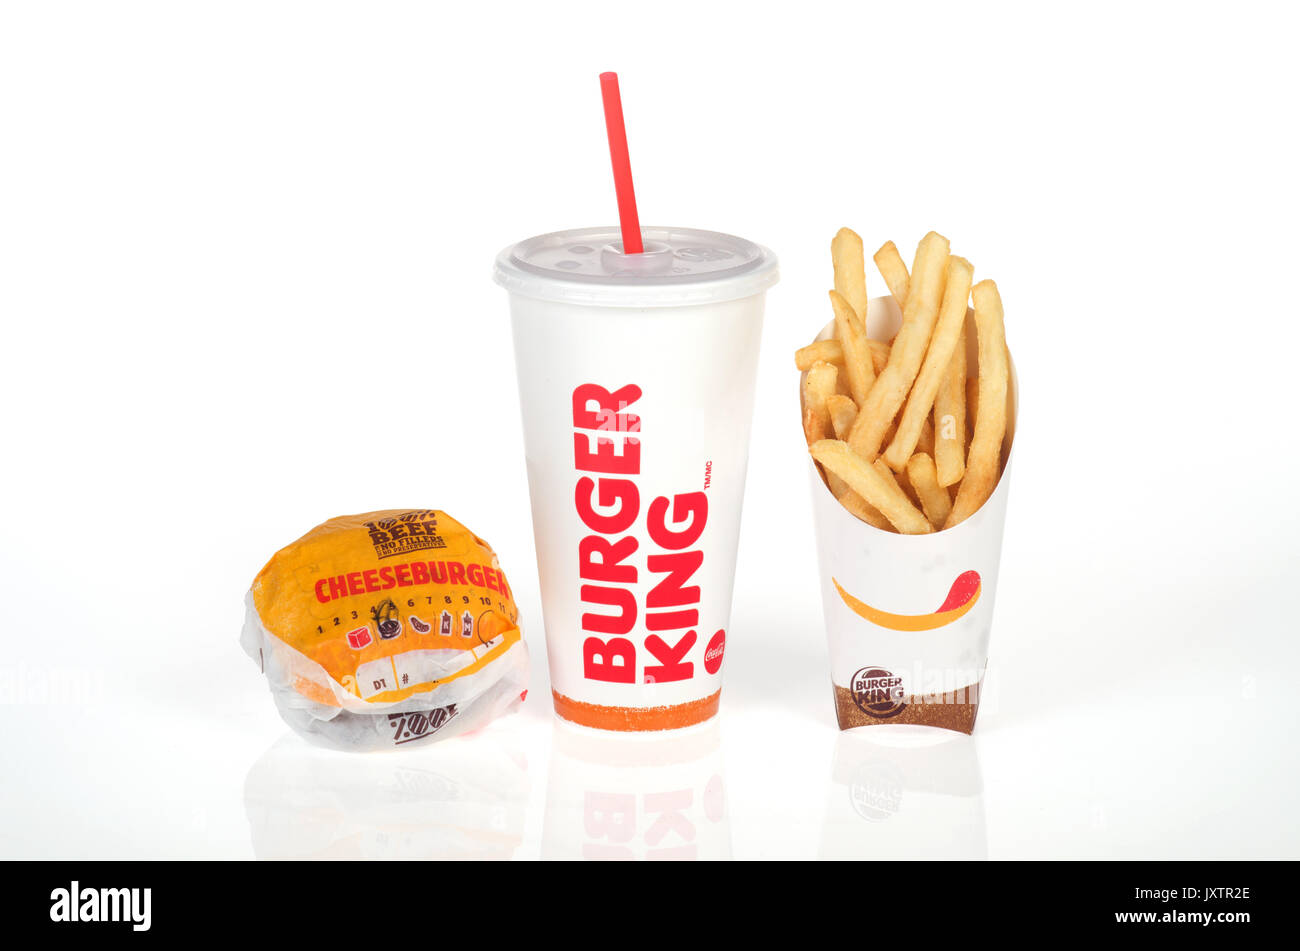 Burger King Meal of double cheeseburger in wrapper with a large fries and drink  with straw on white background, isolated. USA - Stock Image